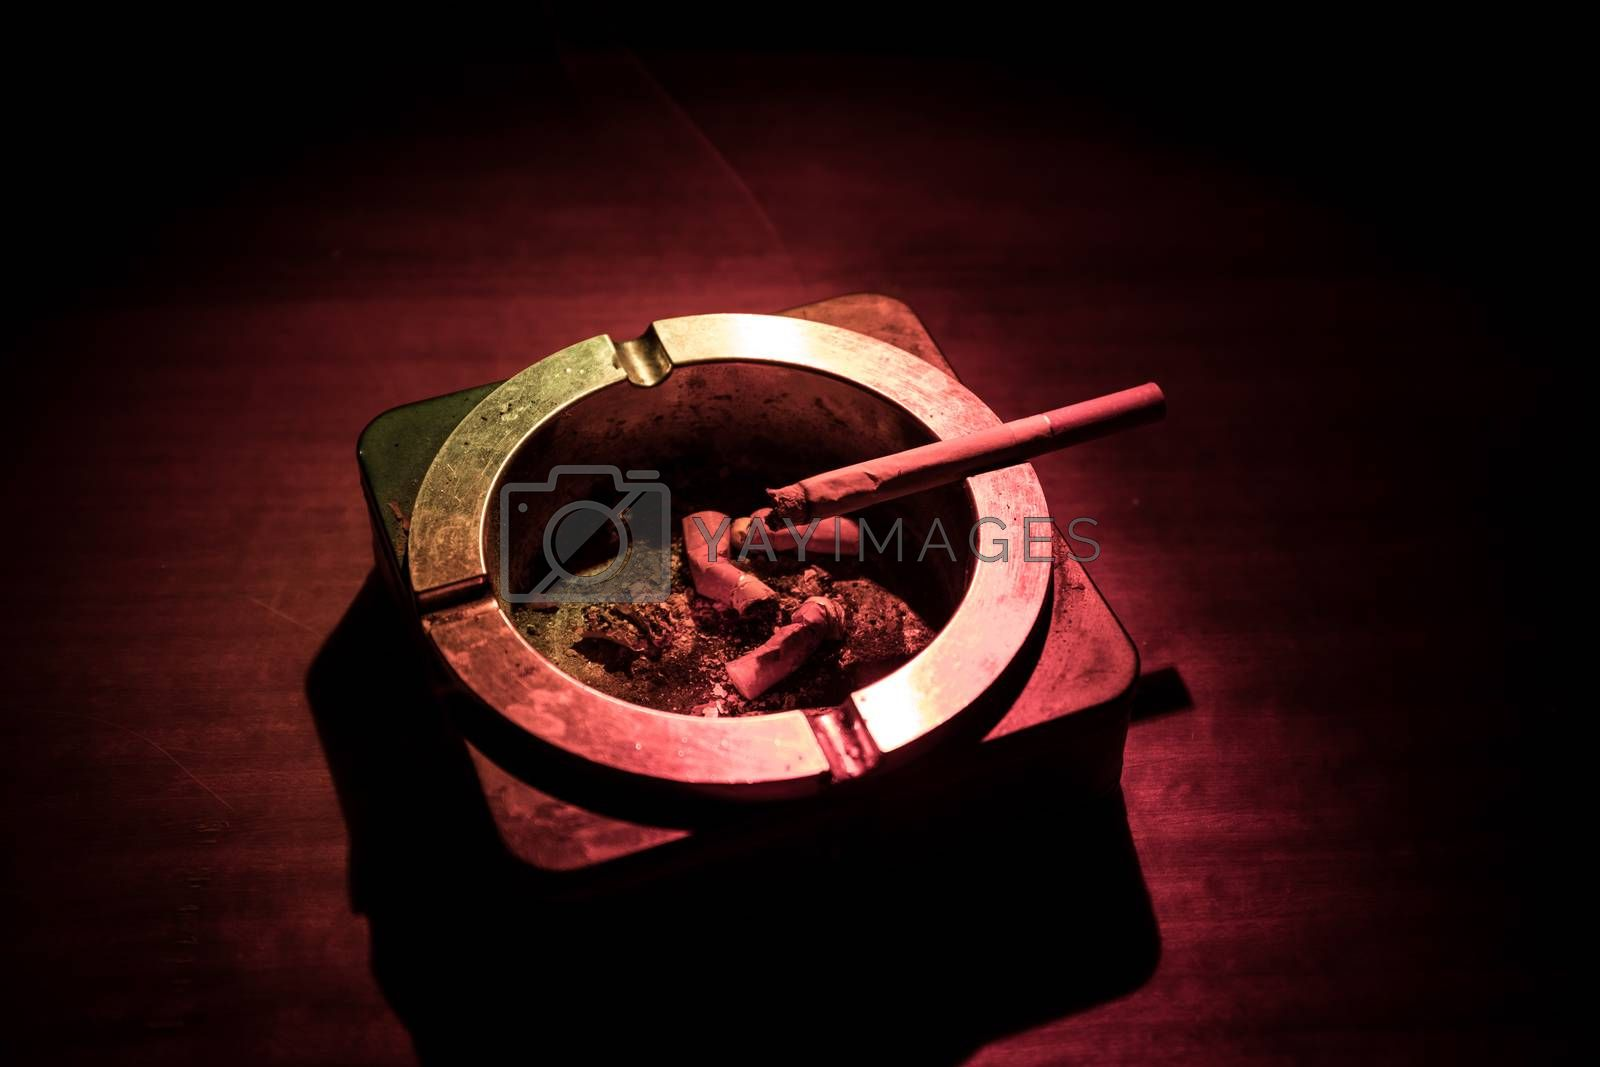 No smoking concept. Creative artwork table decoration with cigarettes. Cigarettes cause cancer and kill. Cigarette on ashtray on wooden table